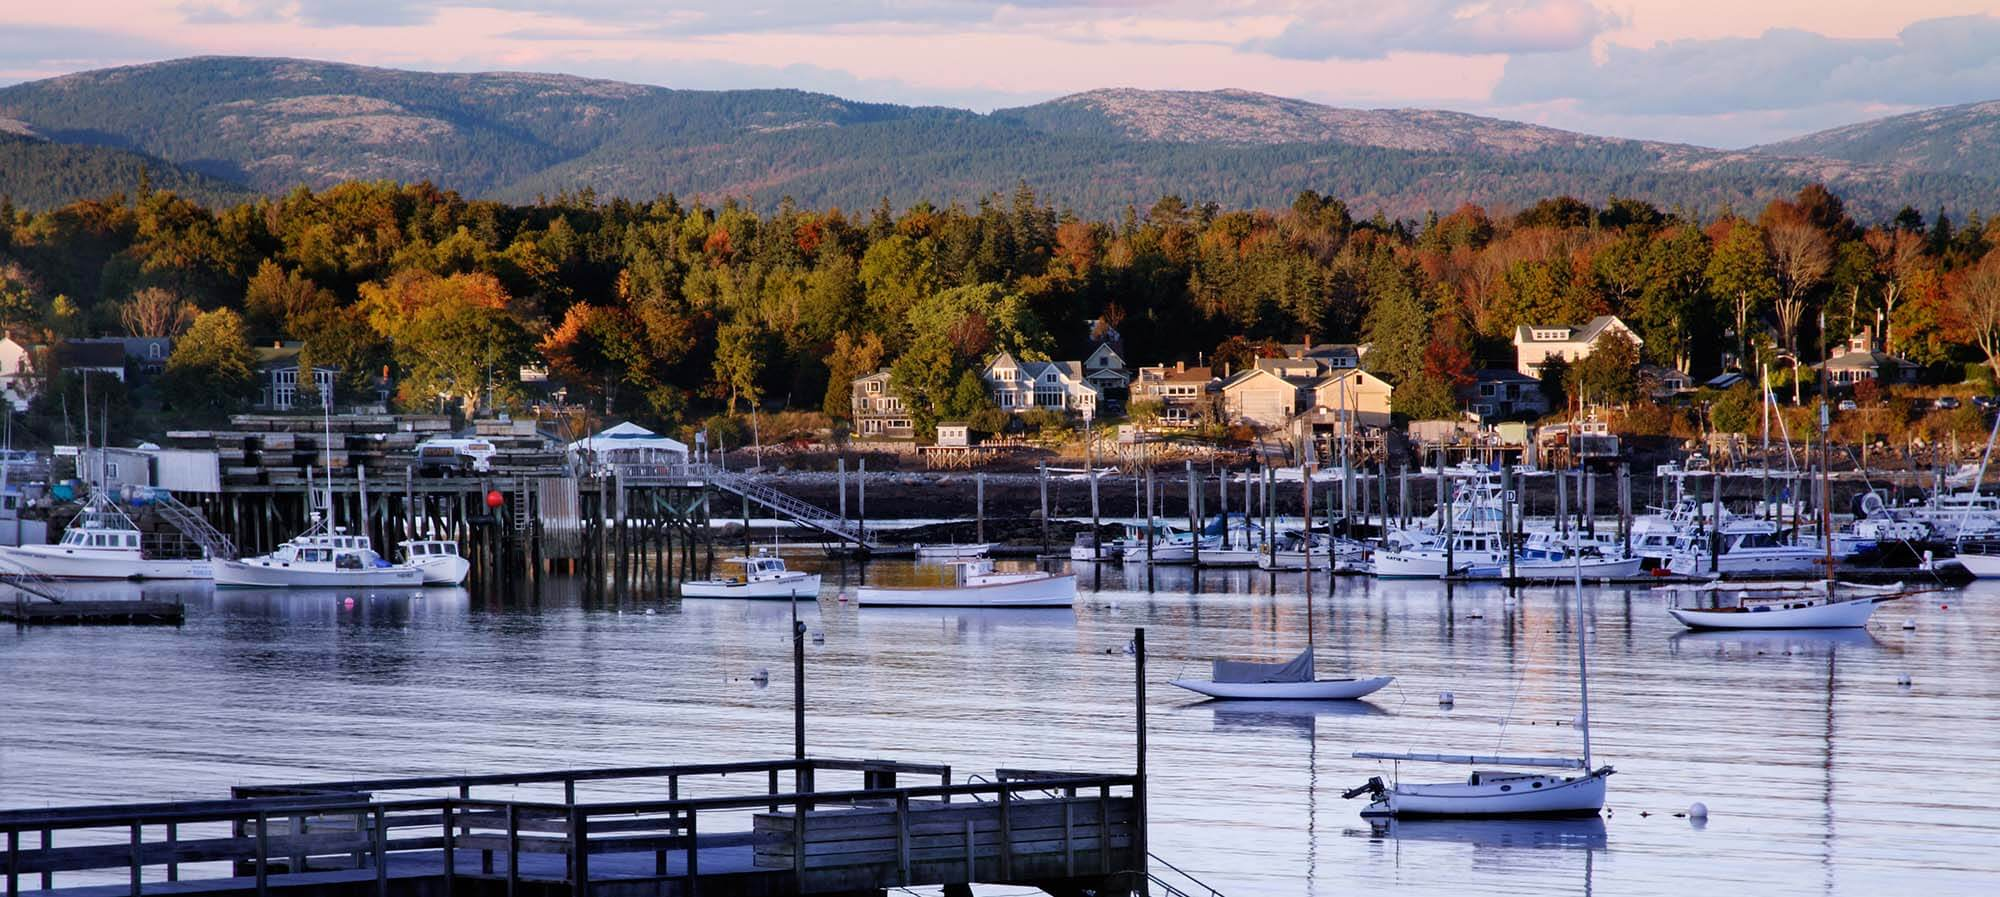 Southwest Harbor on Mount Desert Island, Maine